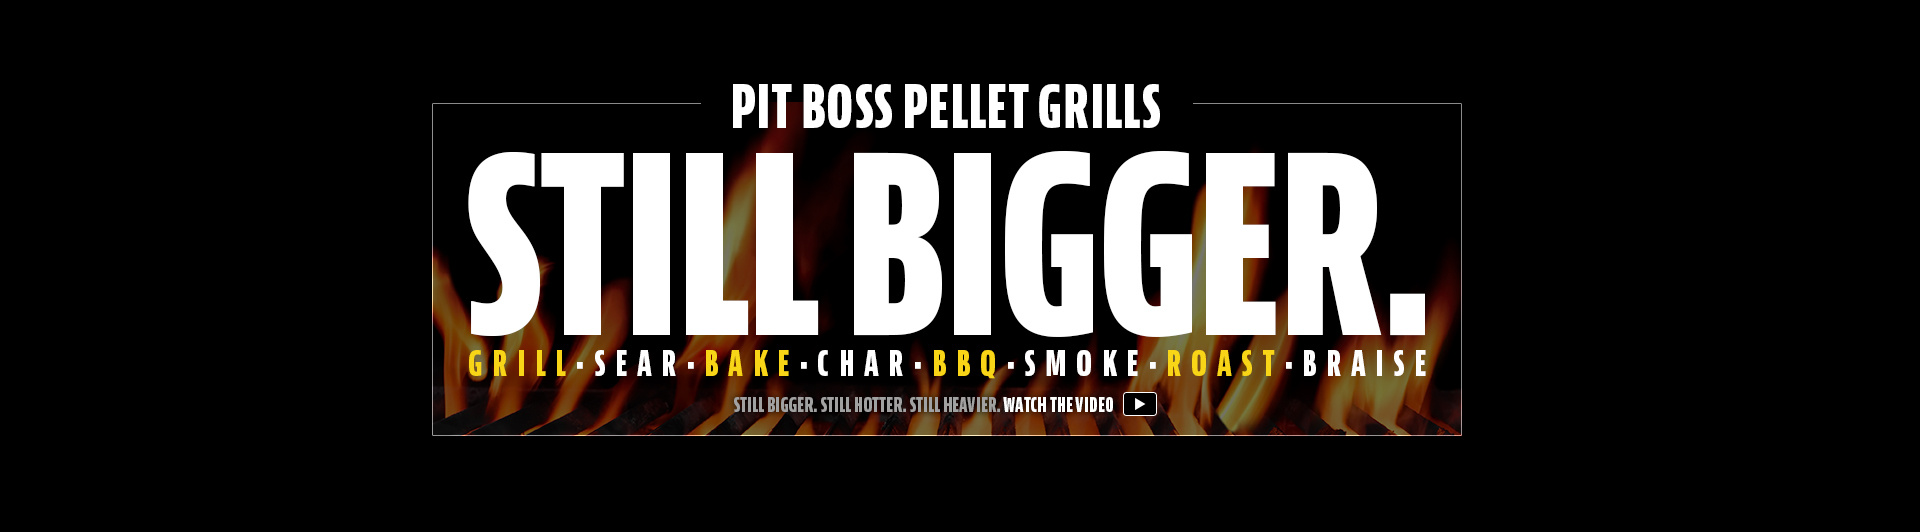 Pit Boss Grills Wood Pellet Grills Ceramic Charcoal